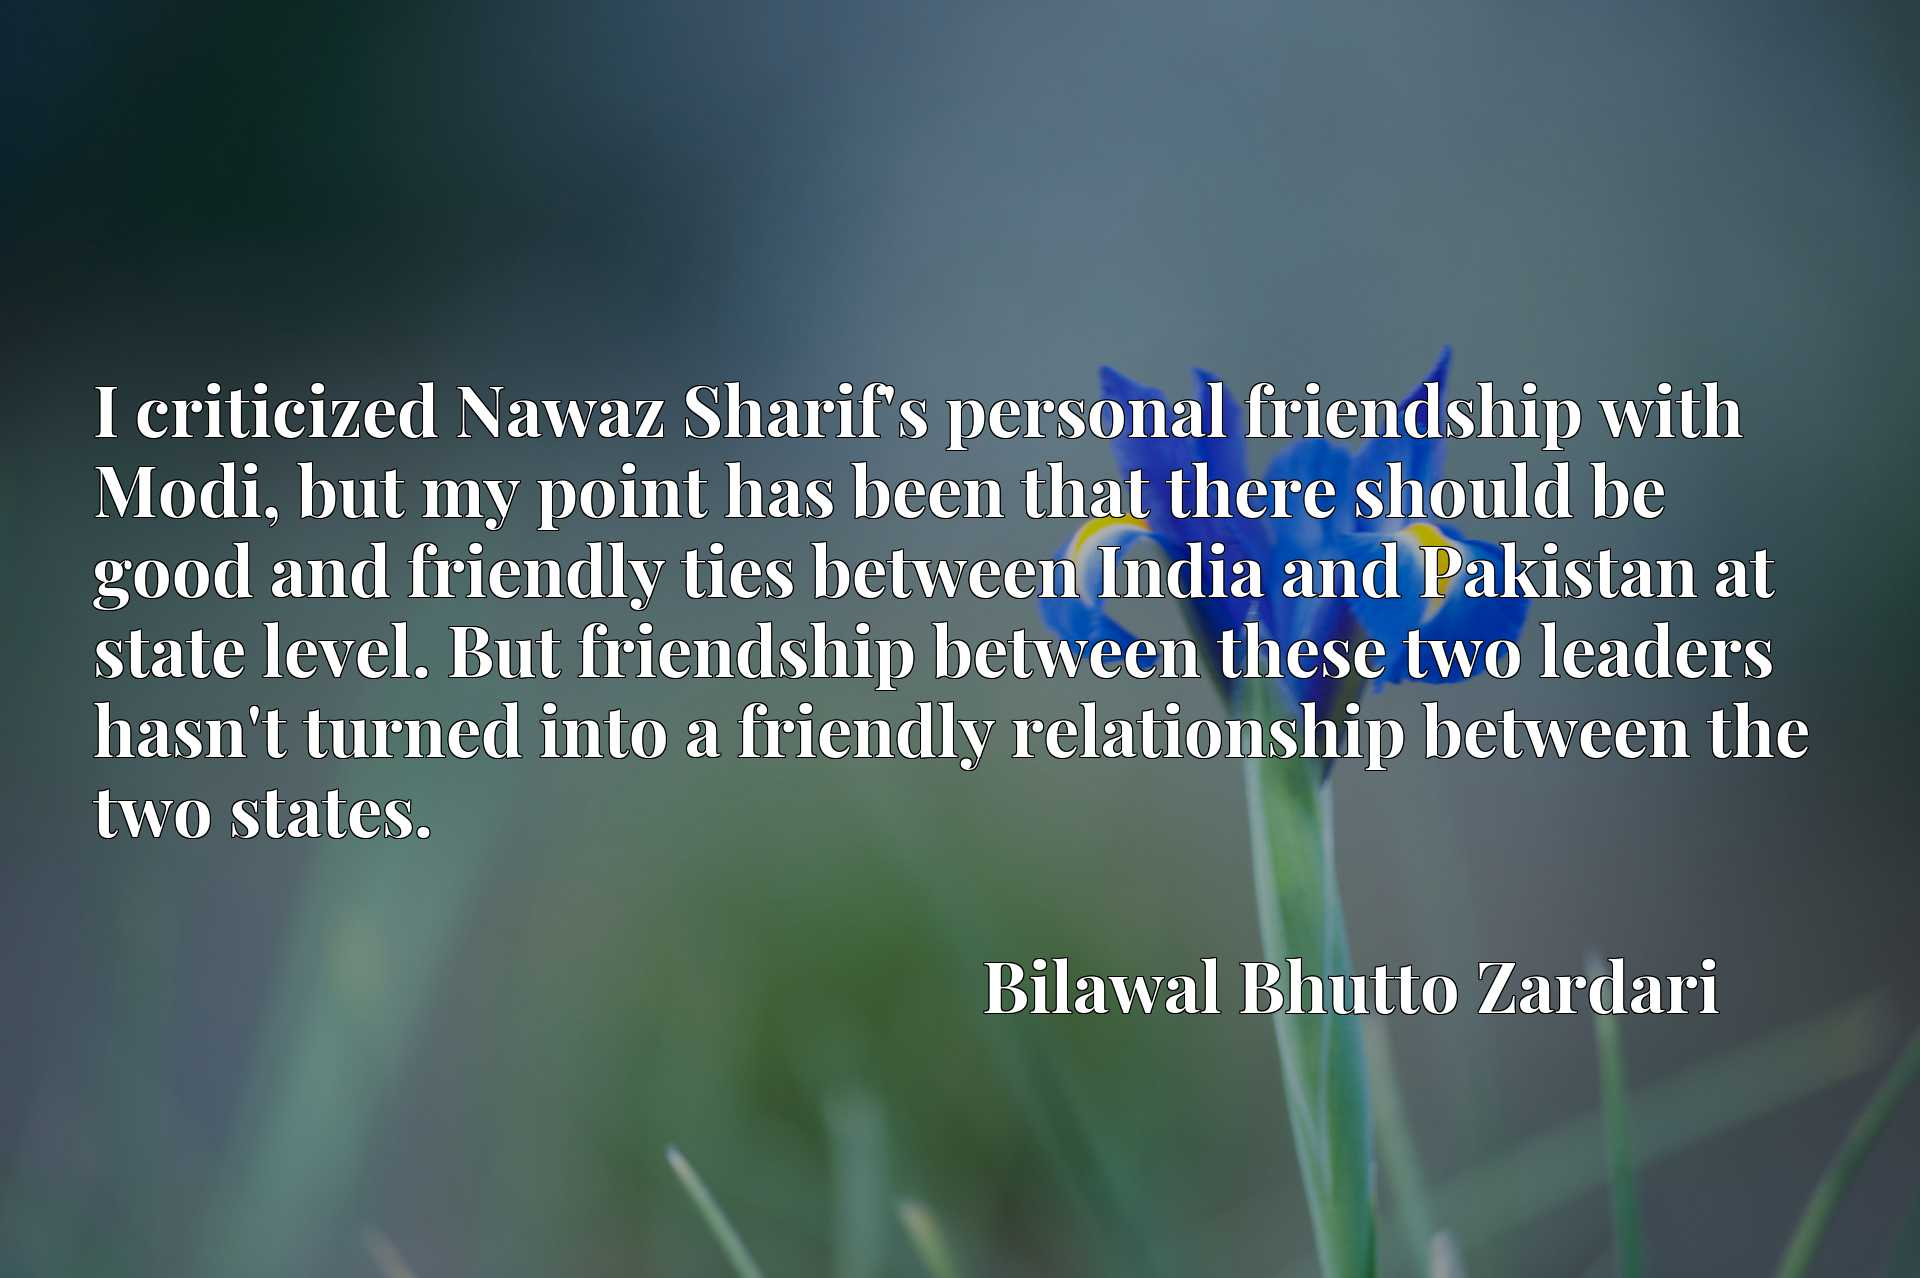 I criticized Nawaz Sharif's personal friendship with Modi, but my point has been that there should be good and friendly ties between India and Pakistan at state level. But friendship between these two leaders hasn't turned into a friendly relationship between the two states.